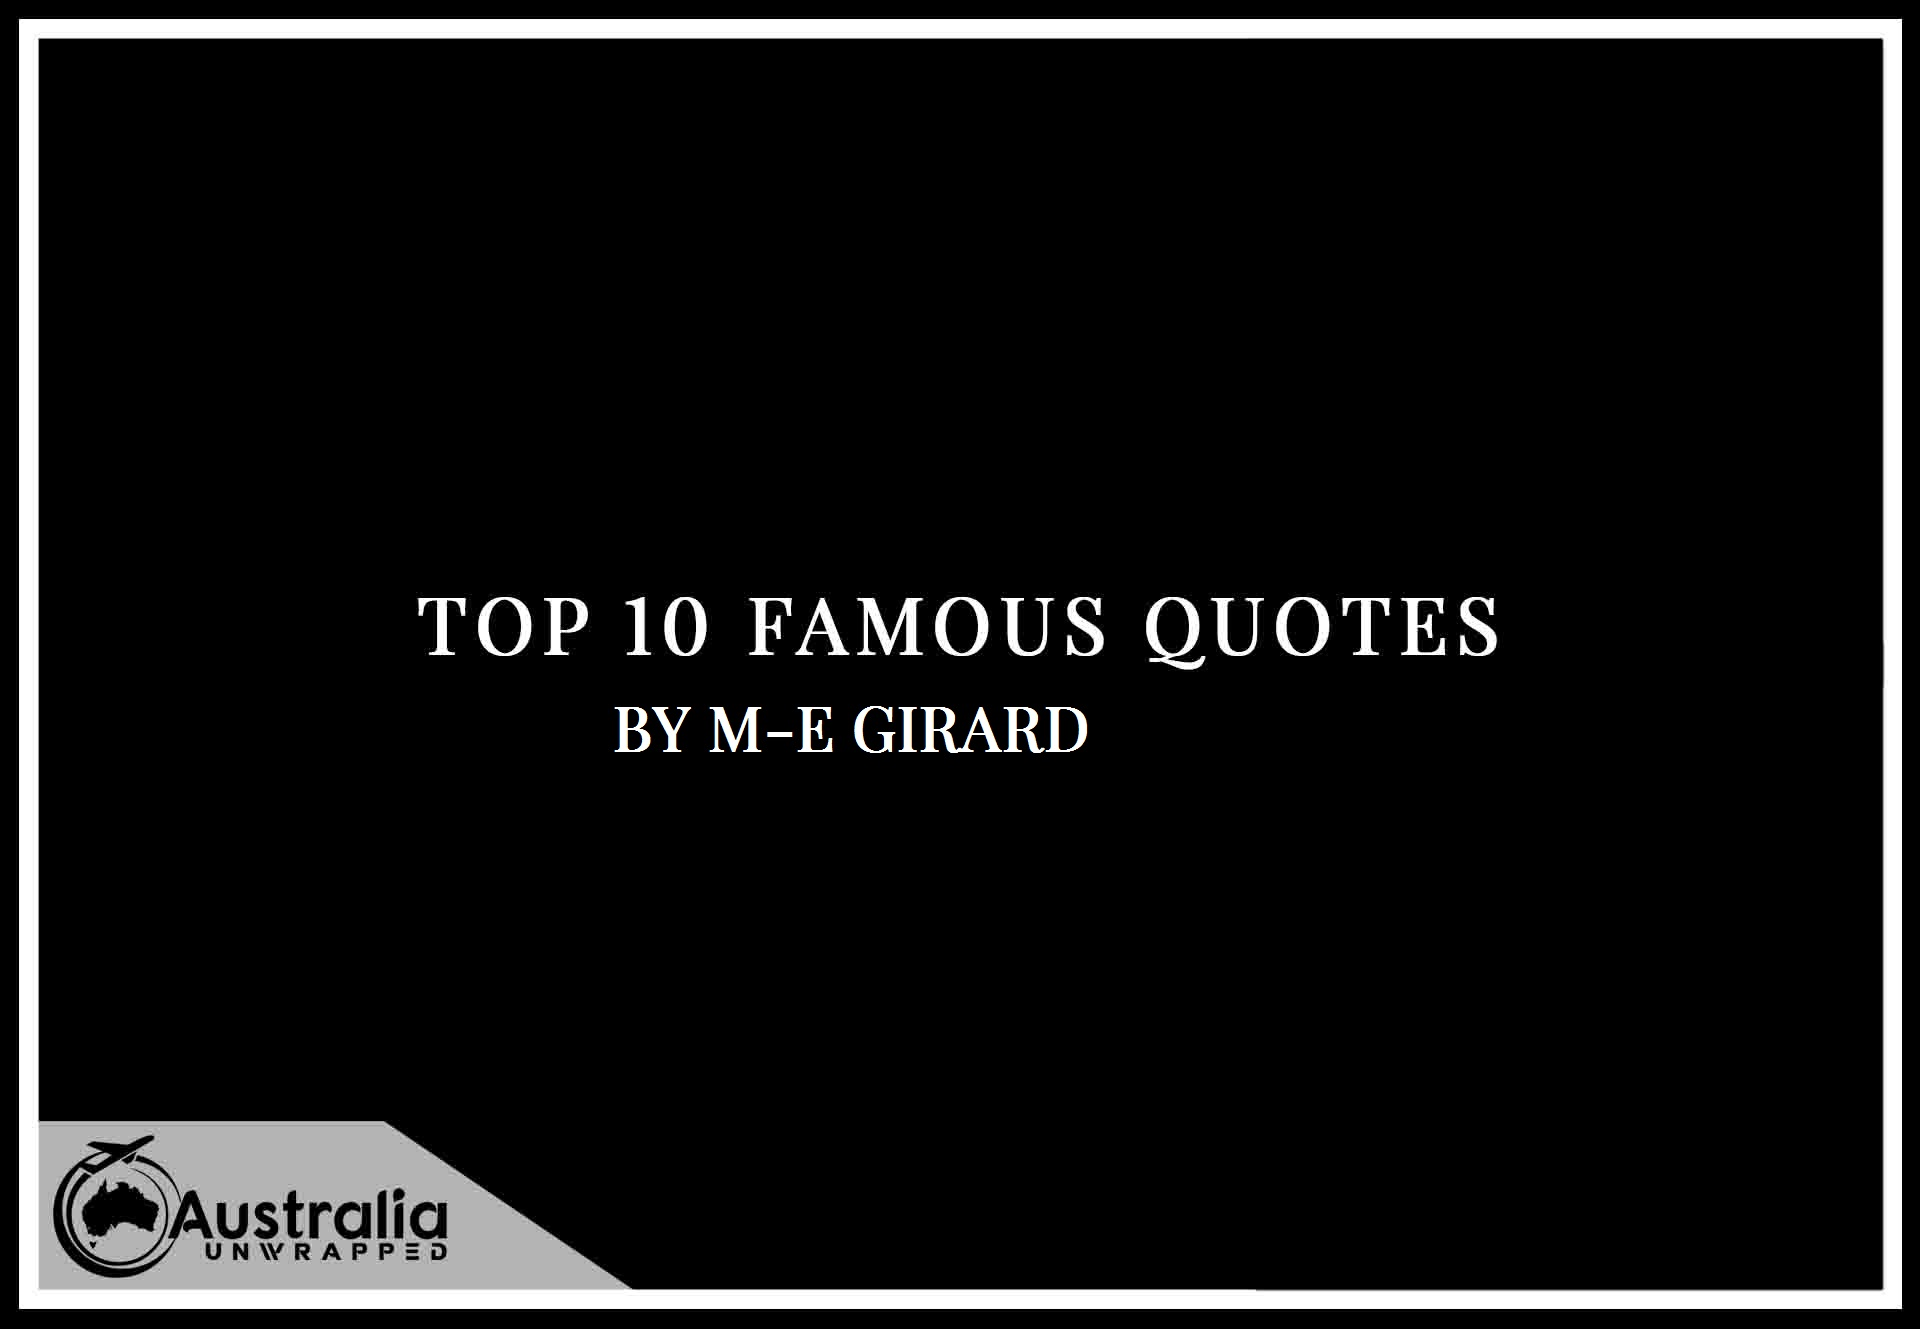 M-E Girard's Top 10 Popular and Famous Quotes